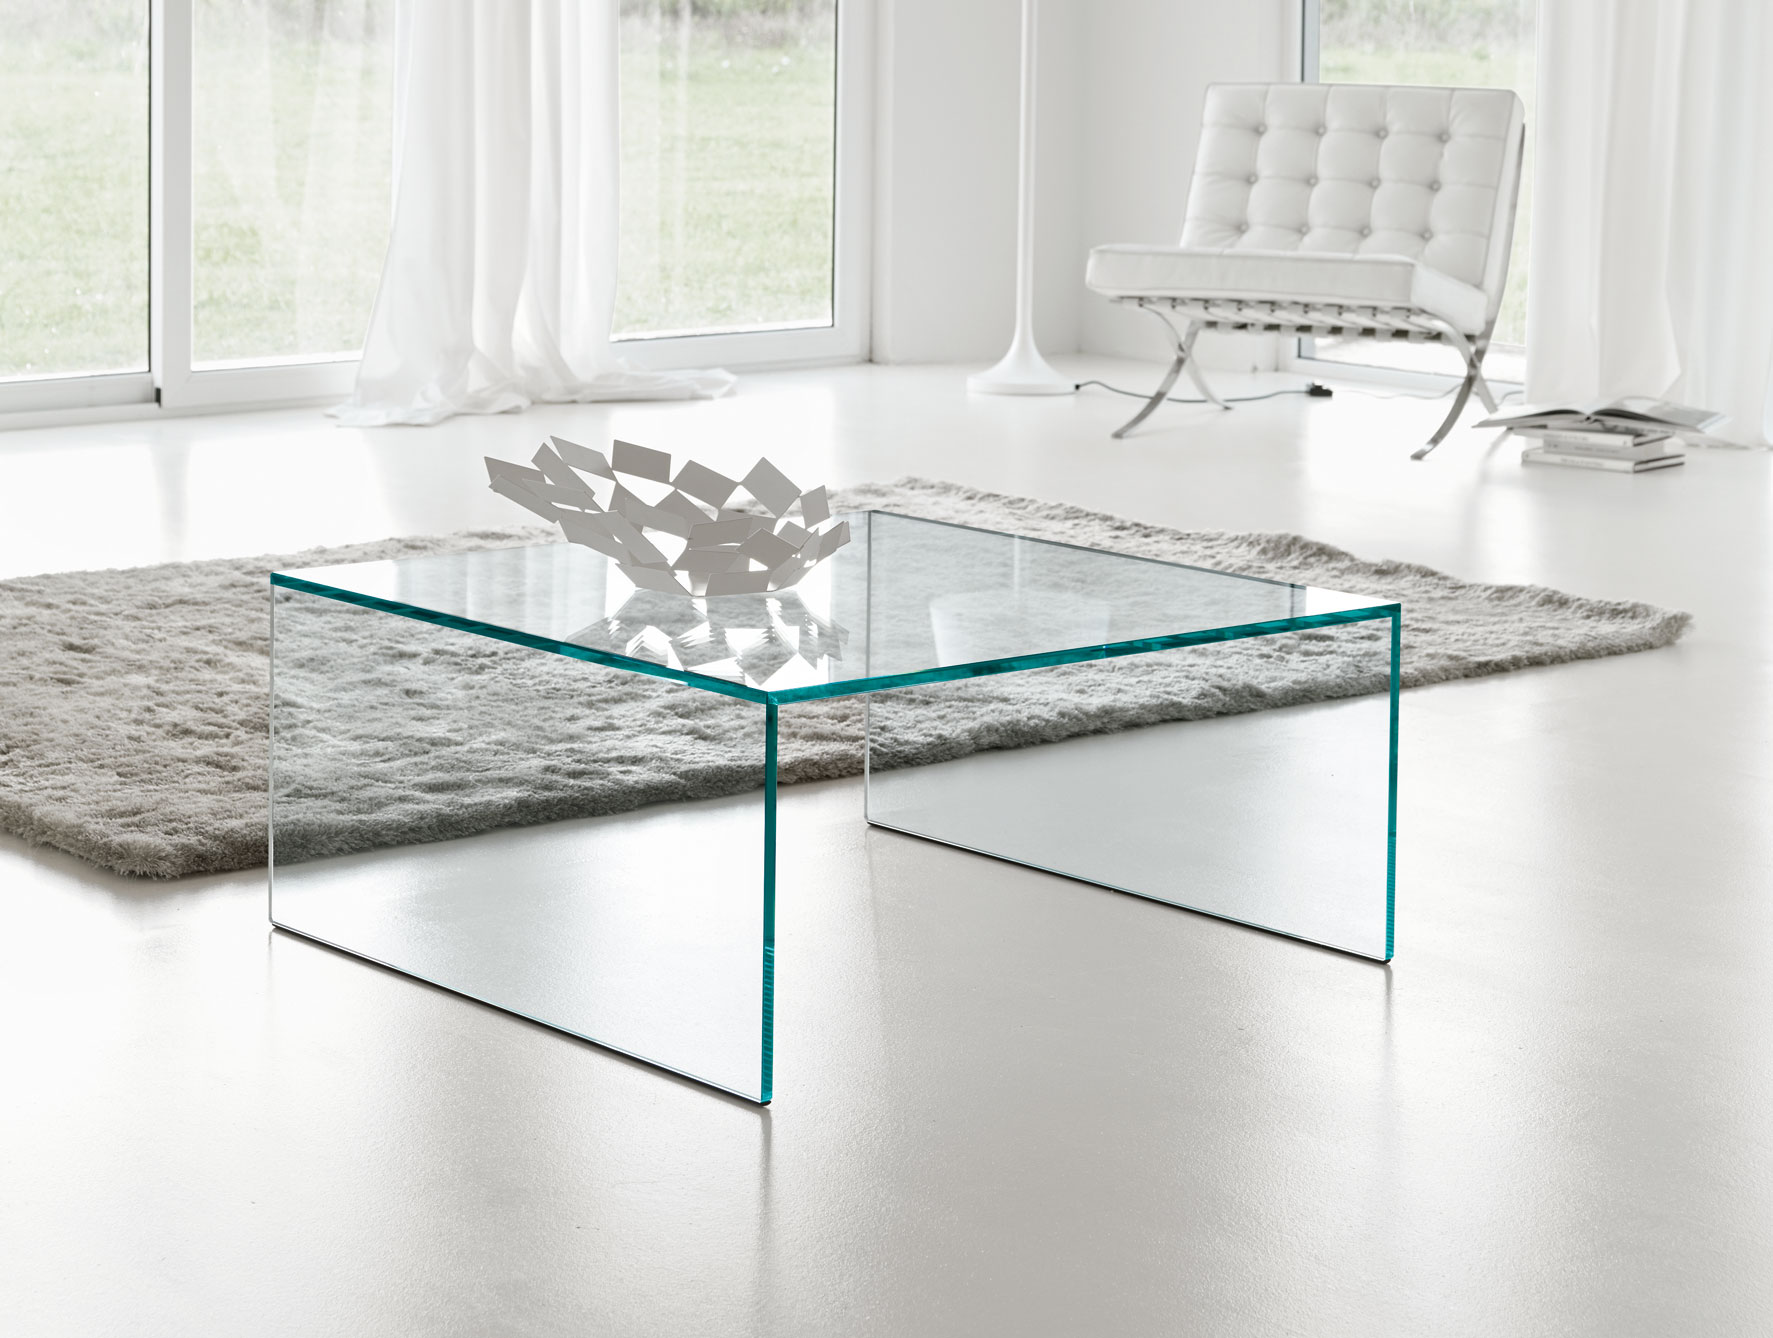 Square Coffee Table Modern Console Tables All Narcissist And Nemesis Family Modern Design Sofa Table Contemporary Glass (Image 3 of 10)